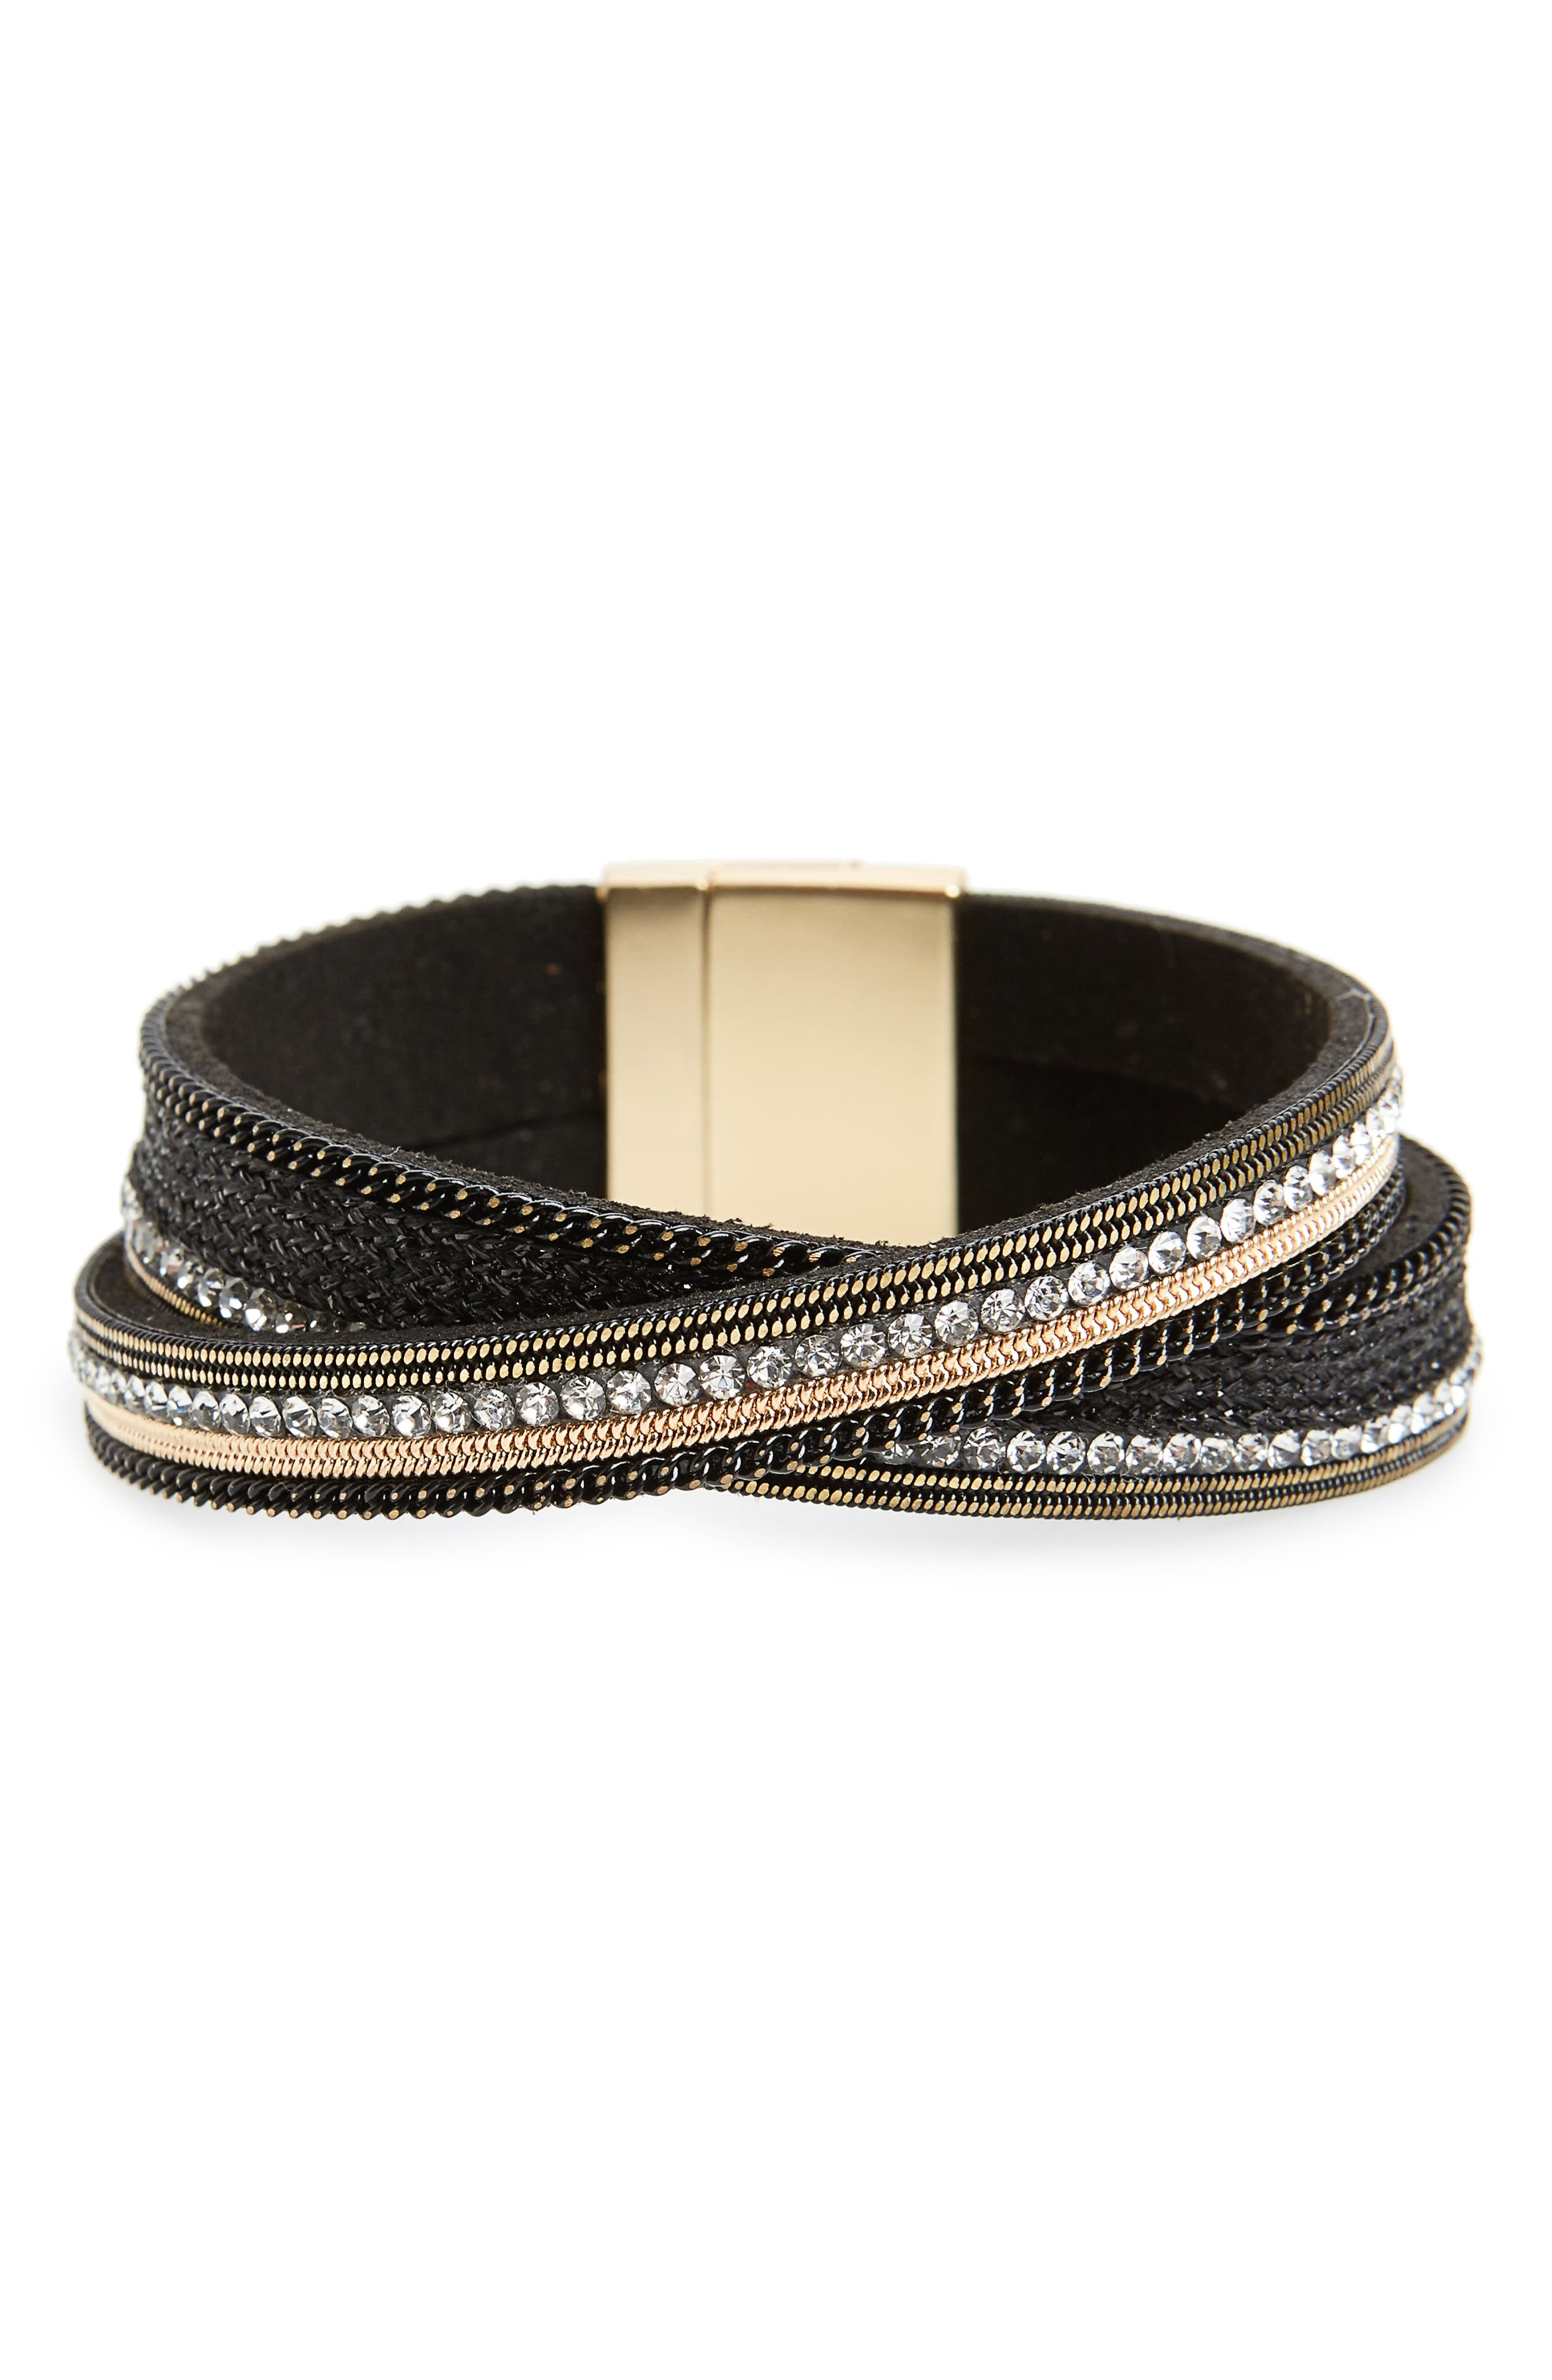 Alternate Image 1 Selected - Panacea Faux Leather Magnetic Bracelet